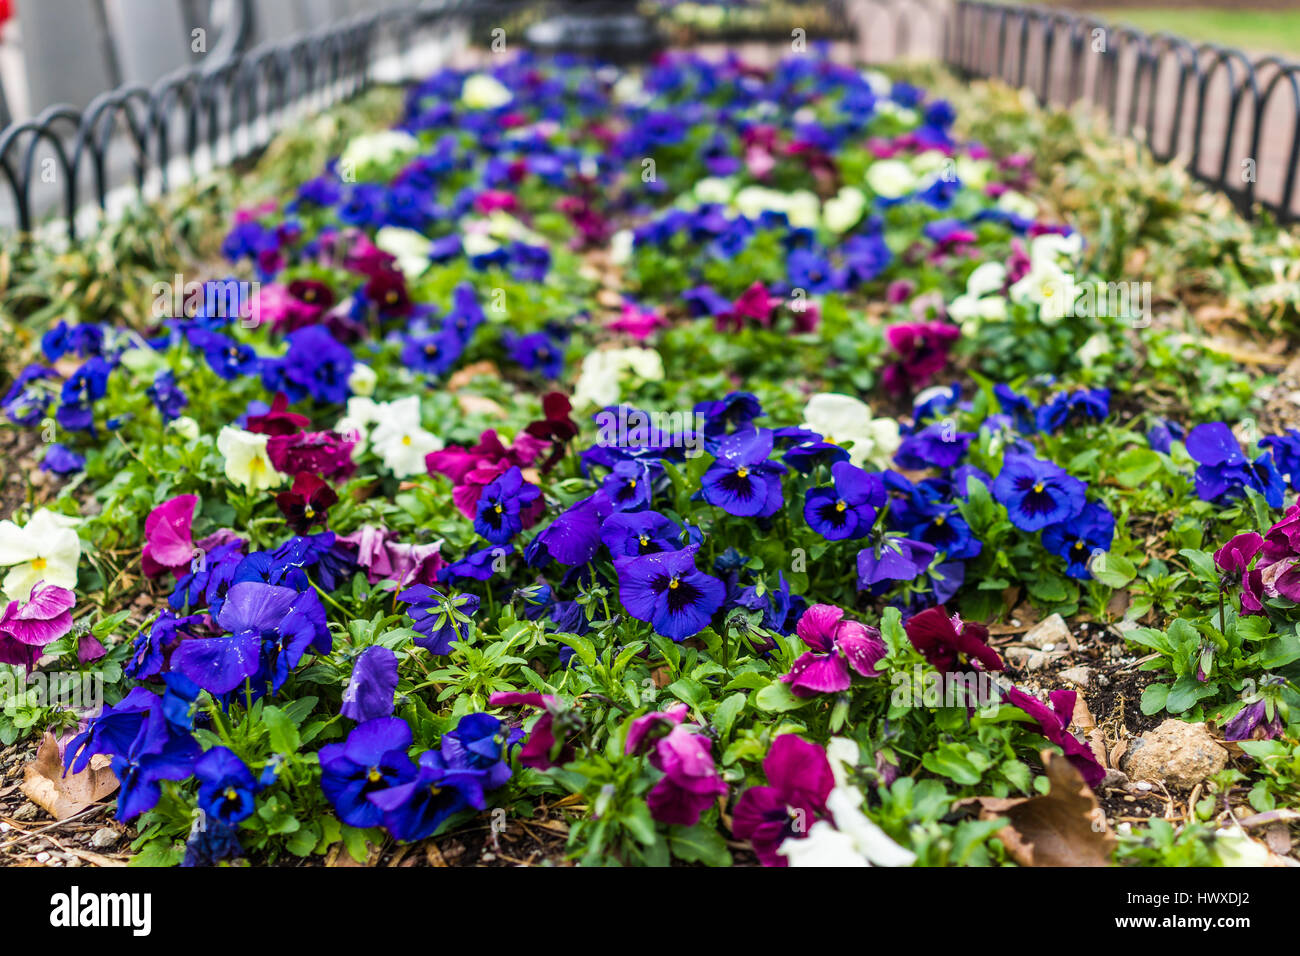 Purple and white flowers of the pansy stock photos purple and purple blue and white pansy flowers in garden macro closeup stock image mightylinksfo